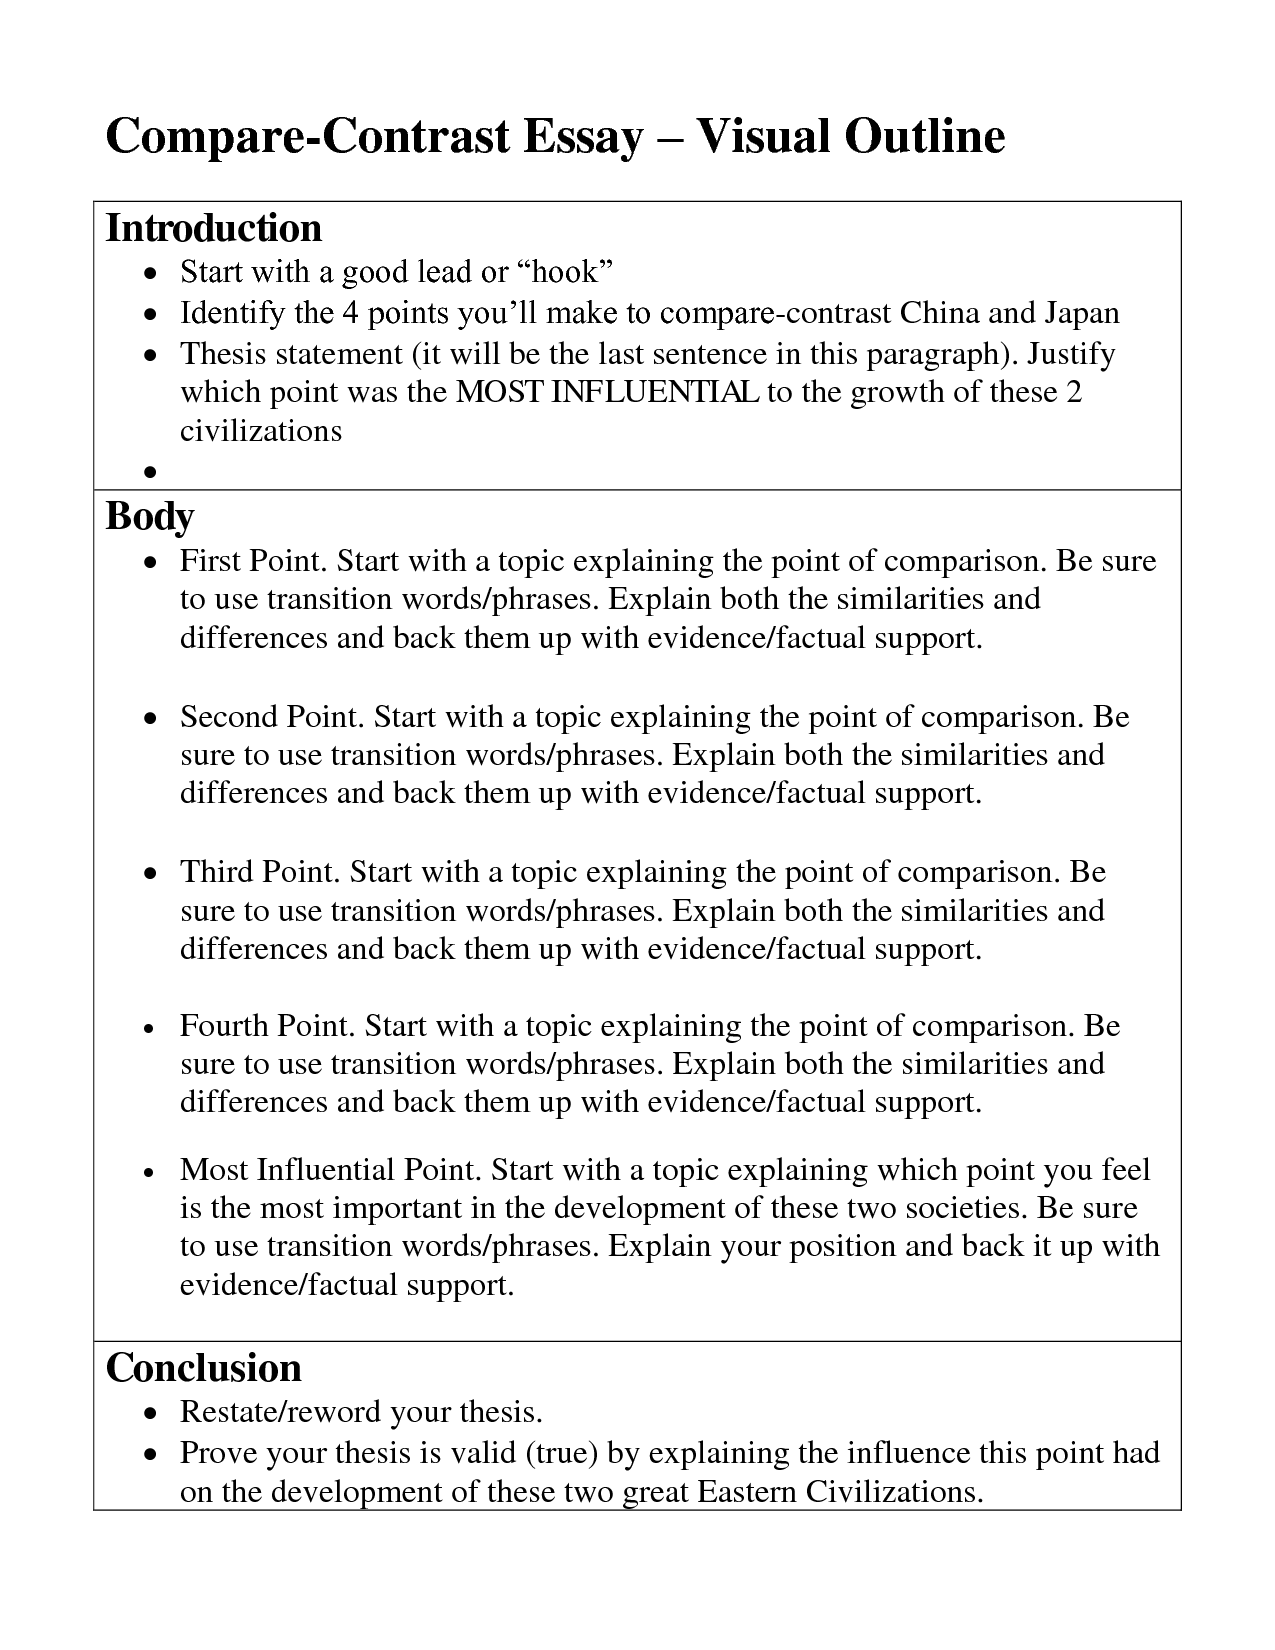 Writing Compare And Contrast Essays  Steps For Great Compare And Contrast Essays Writing